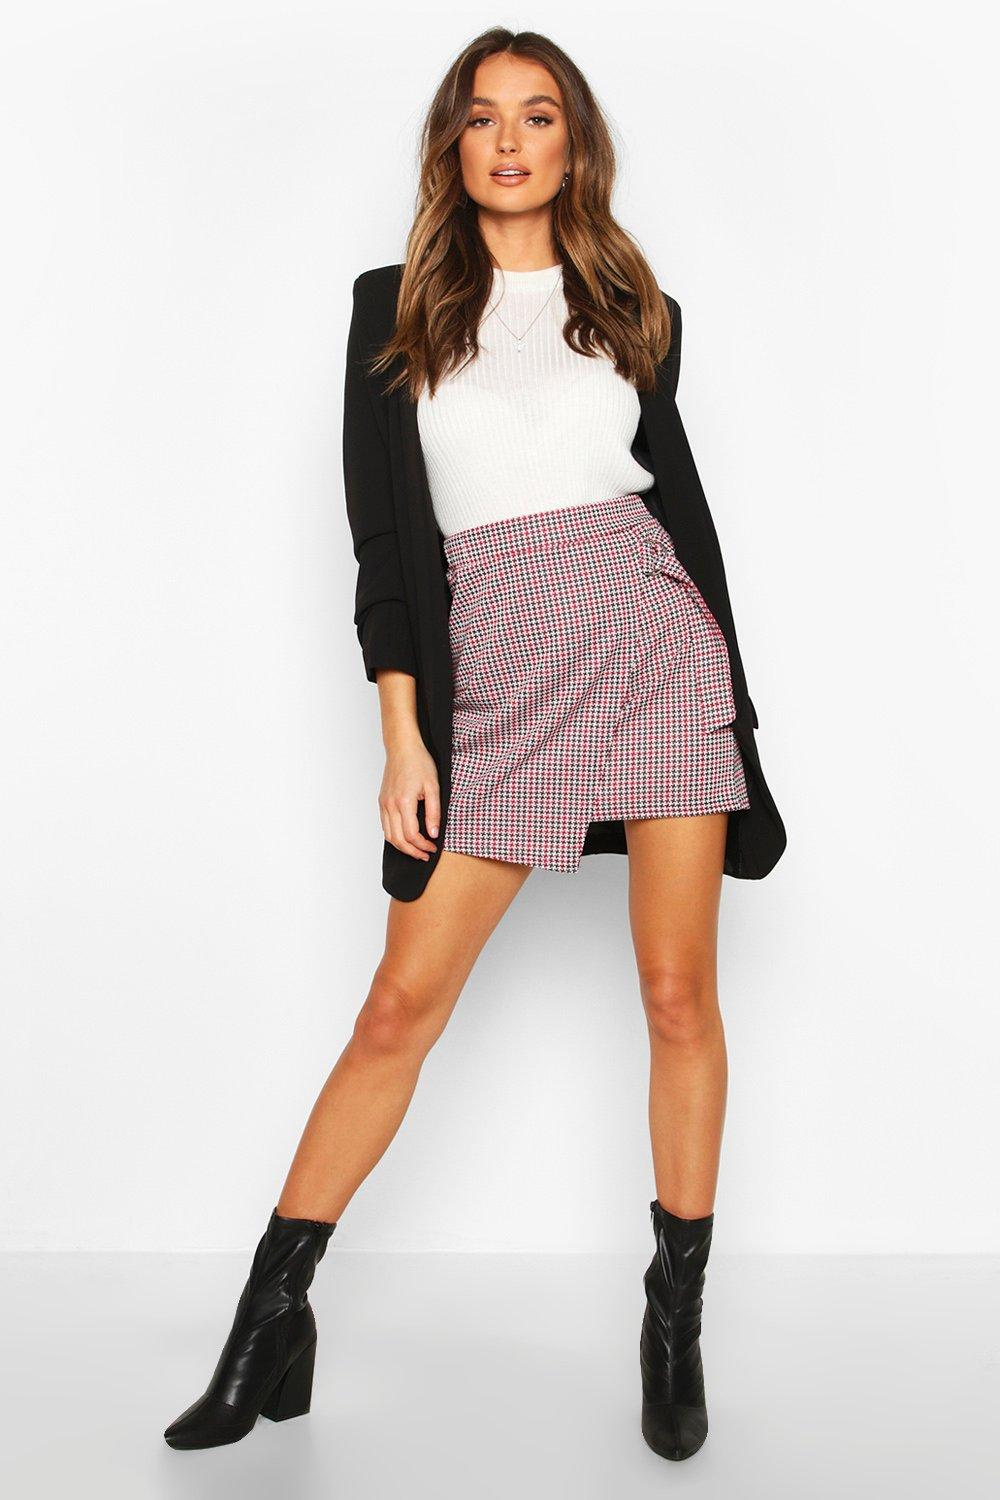 SALE Jacquard Check Skirt With D Ring